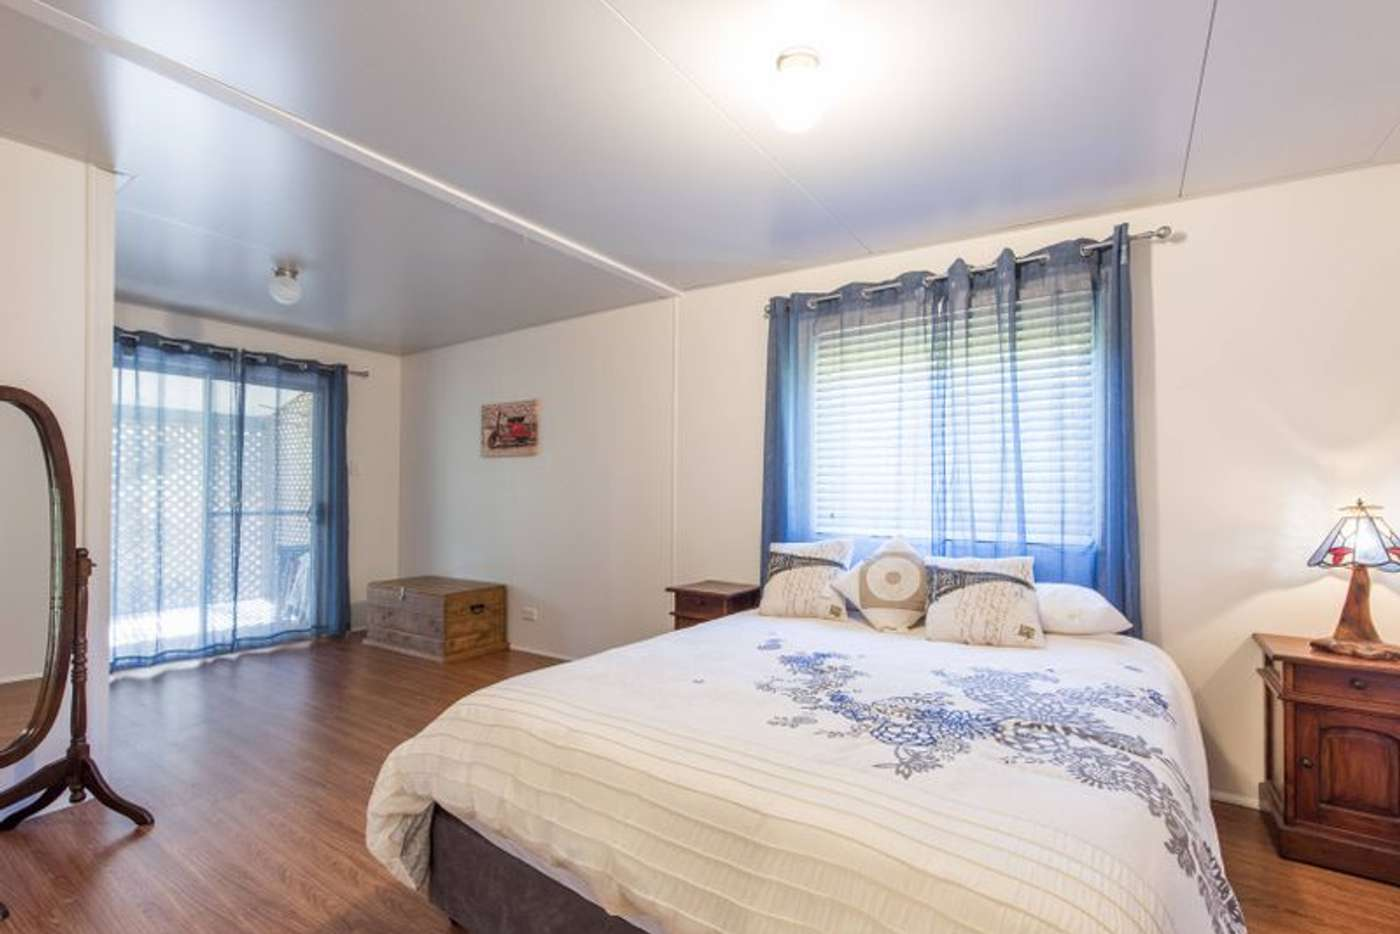 Seventh view of Homely house listing, 42 Long Street, Iluka NSW 2466